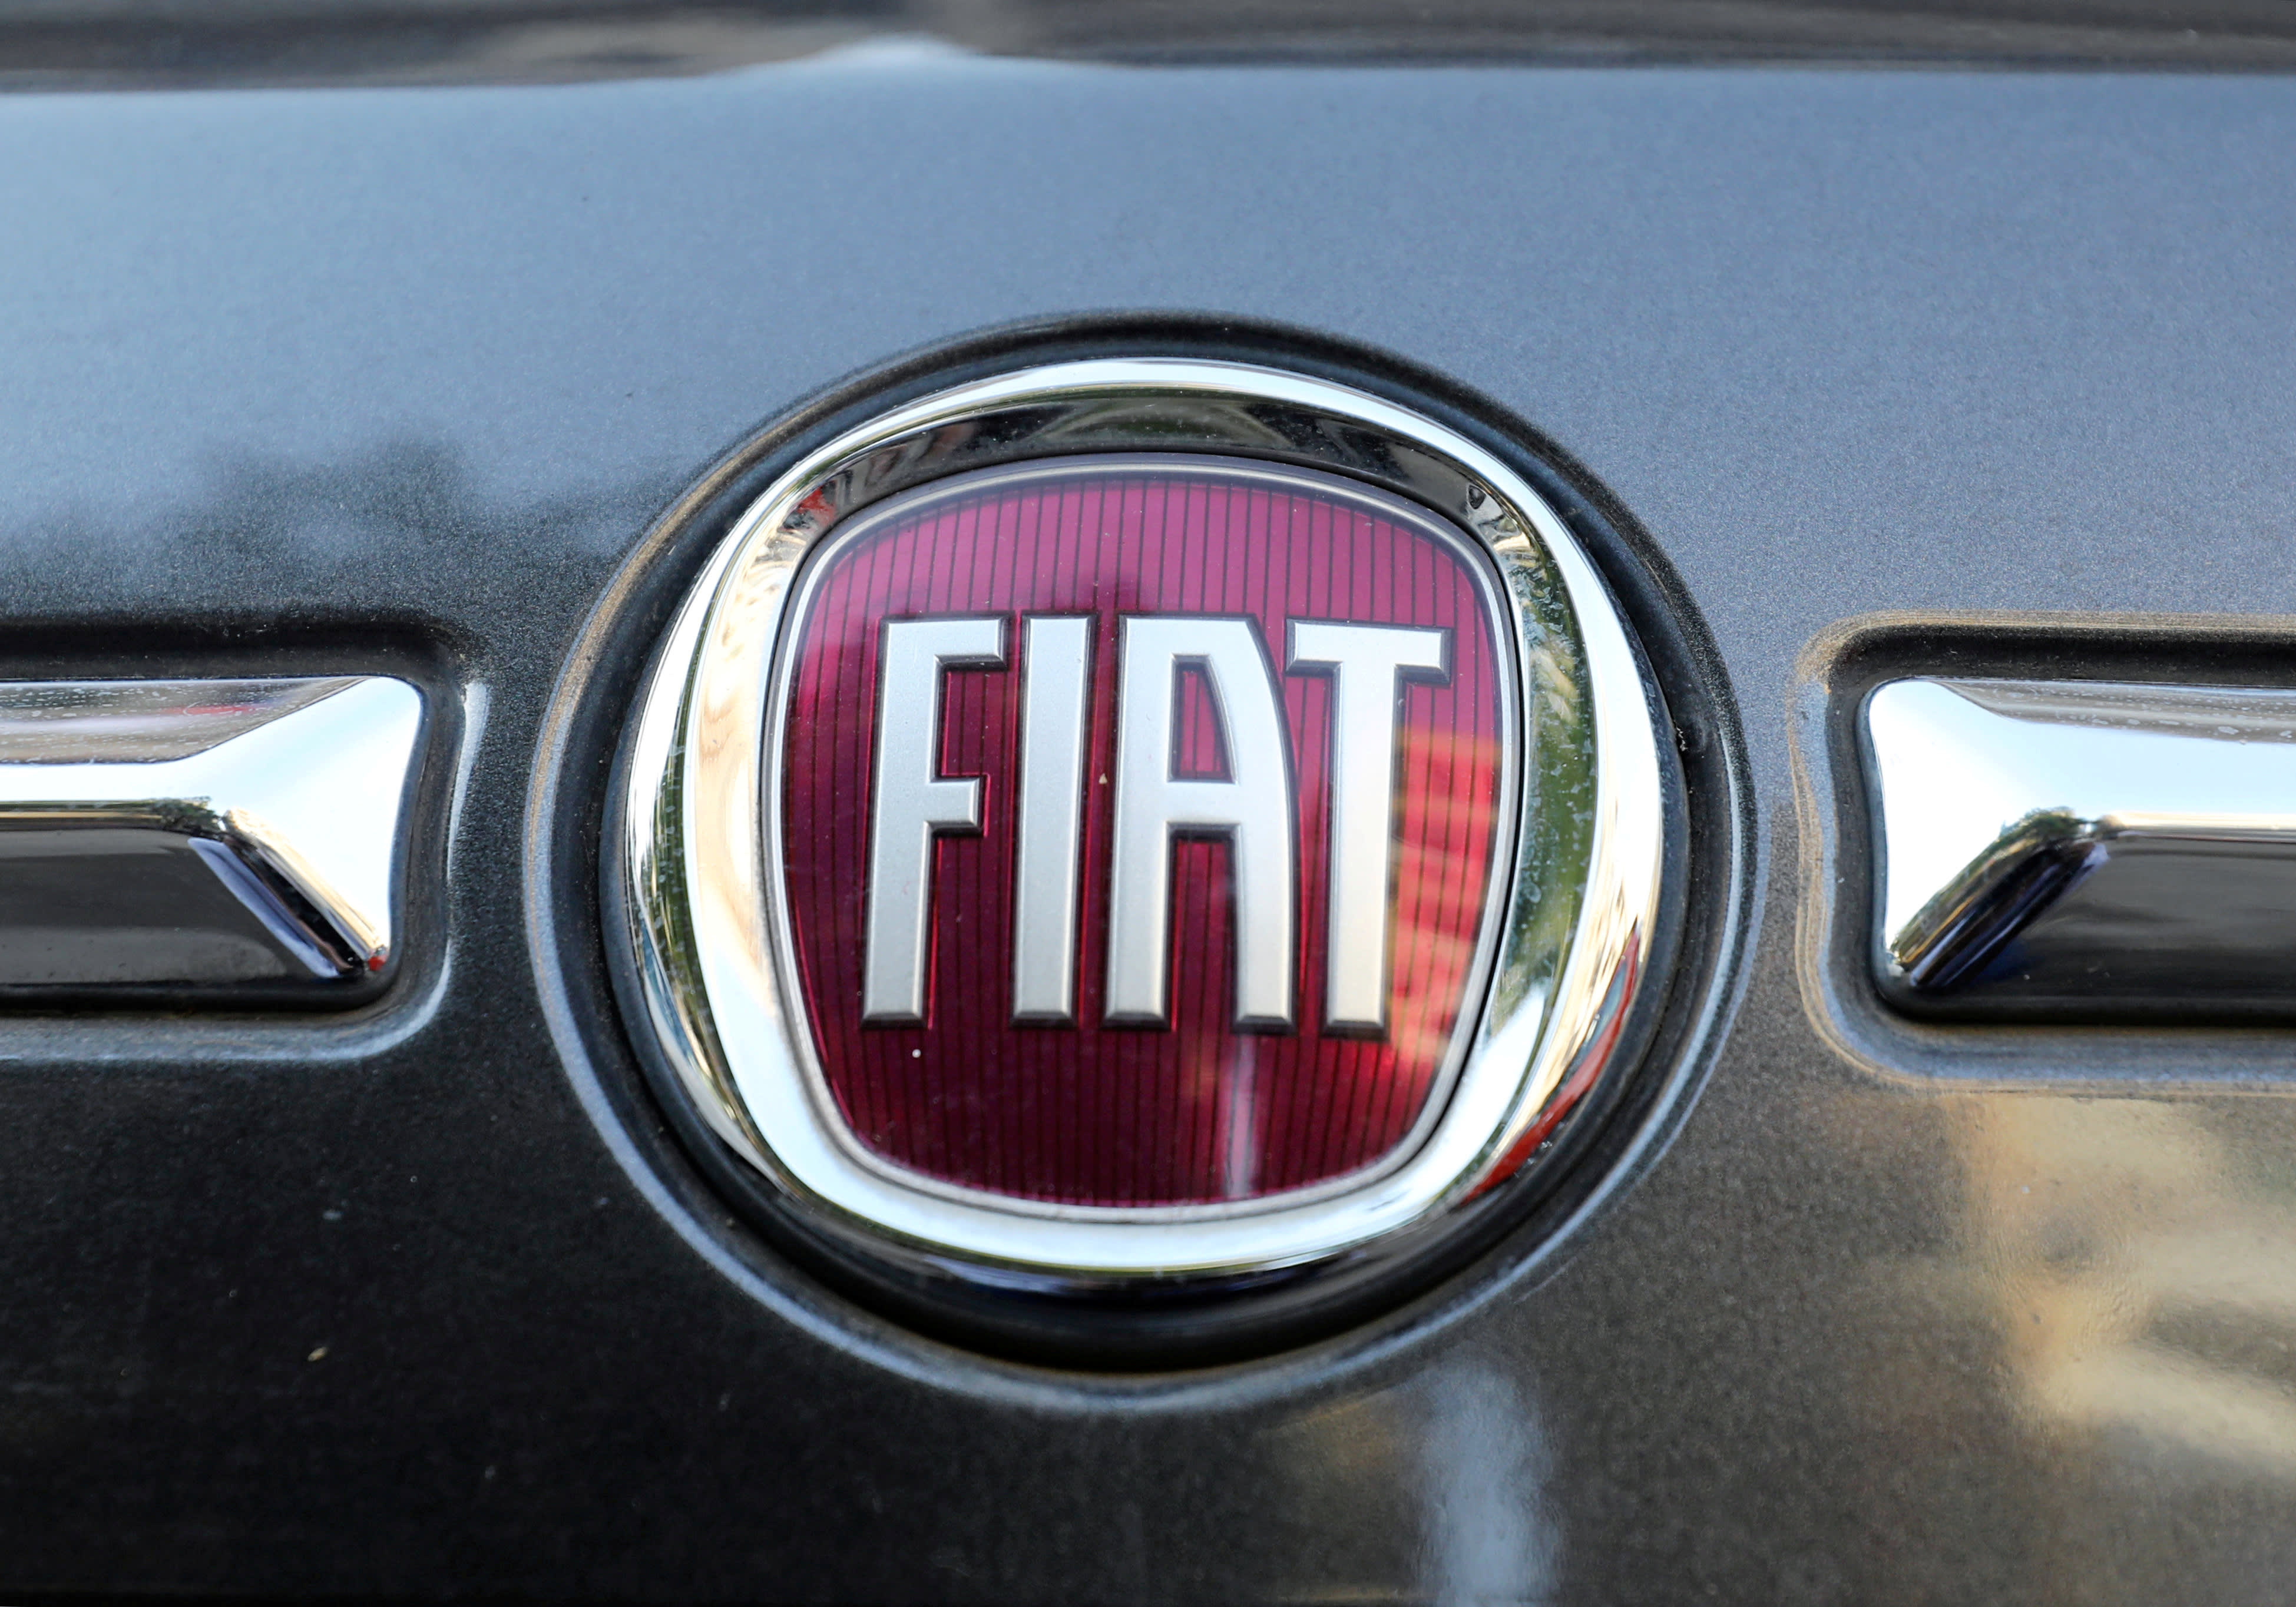 FILE PHOTO: The logo of FIAT carmaker is seen on a vehicle in Cairo, Egypt, May 19, 2019. Picture taken May 19, 2019. REUTERS/Mohamed Abd El Ghany/File Photo